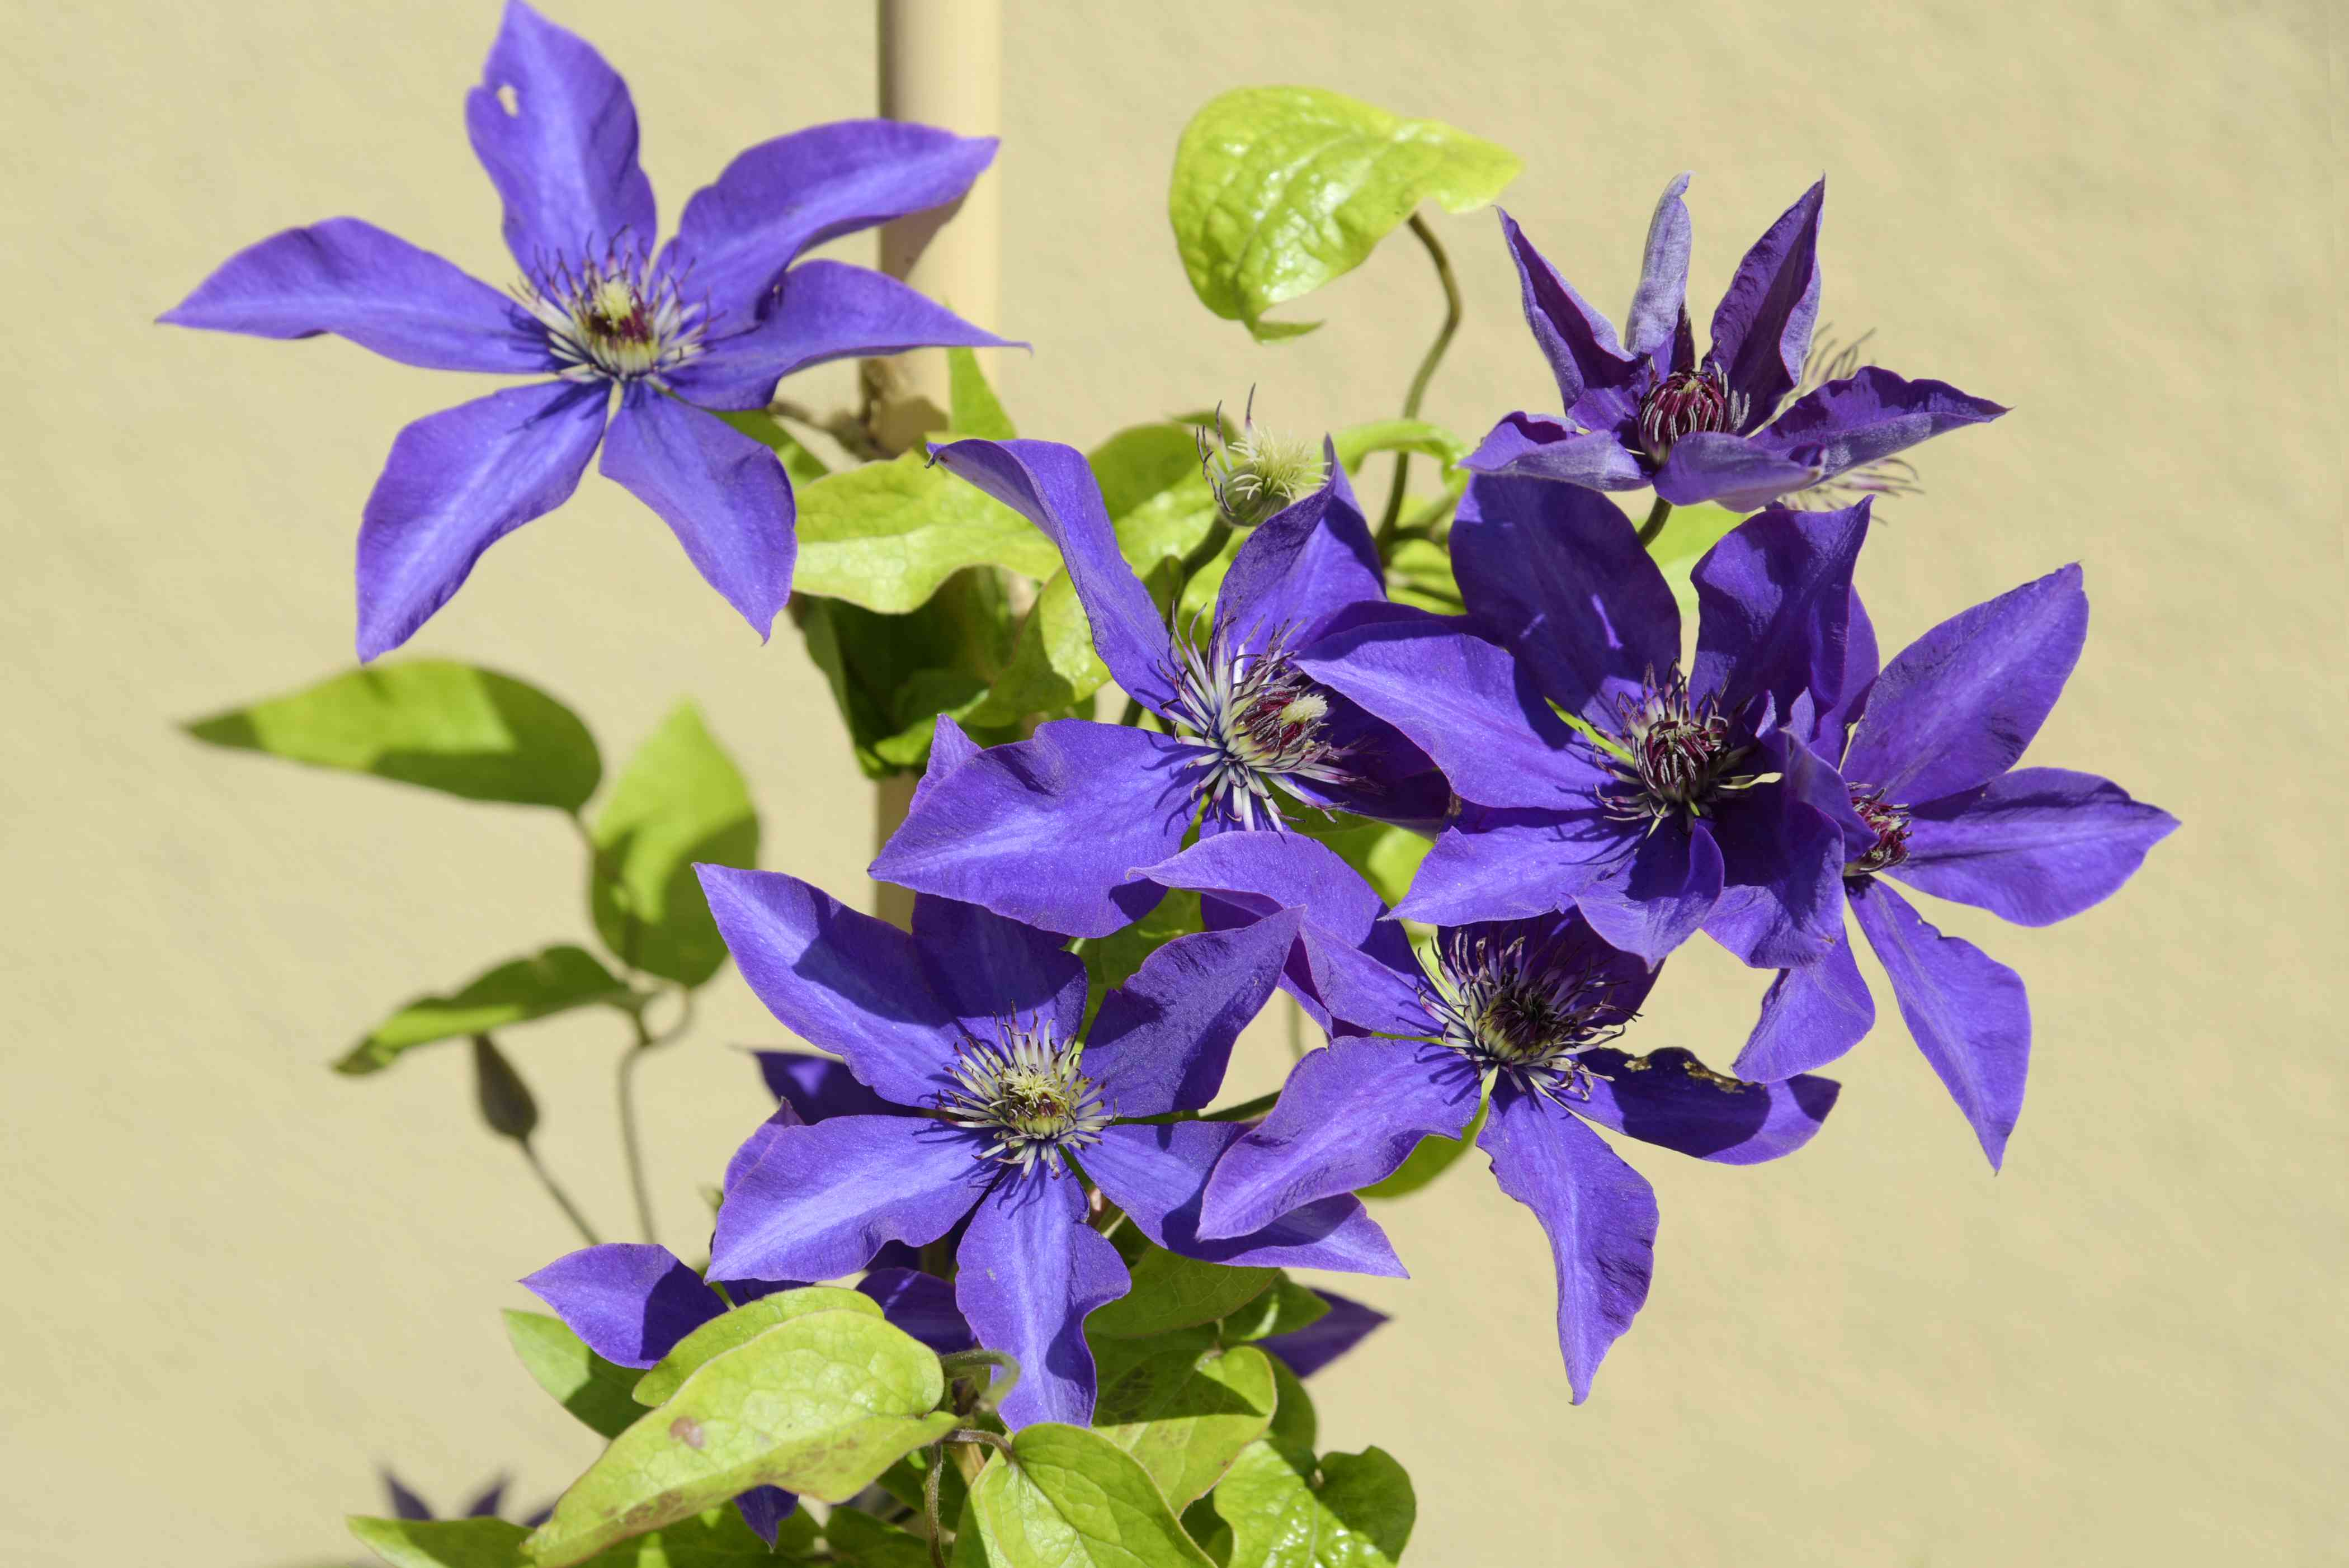 Clematis 'The President' plant with violet-blue flowers with reddish anthers in center growing on vine